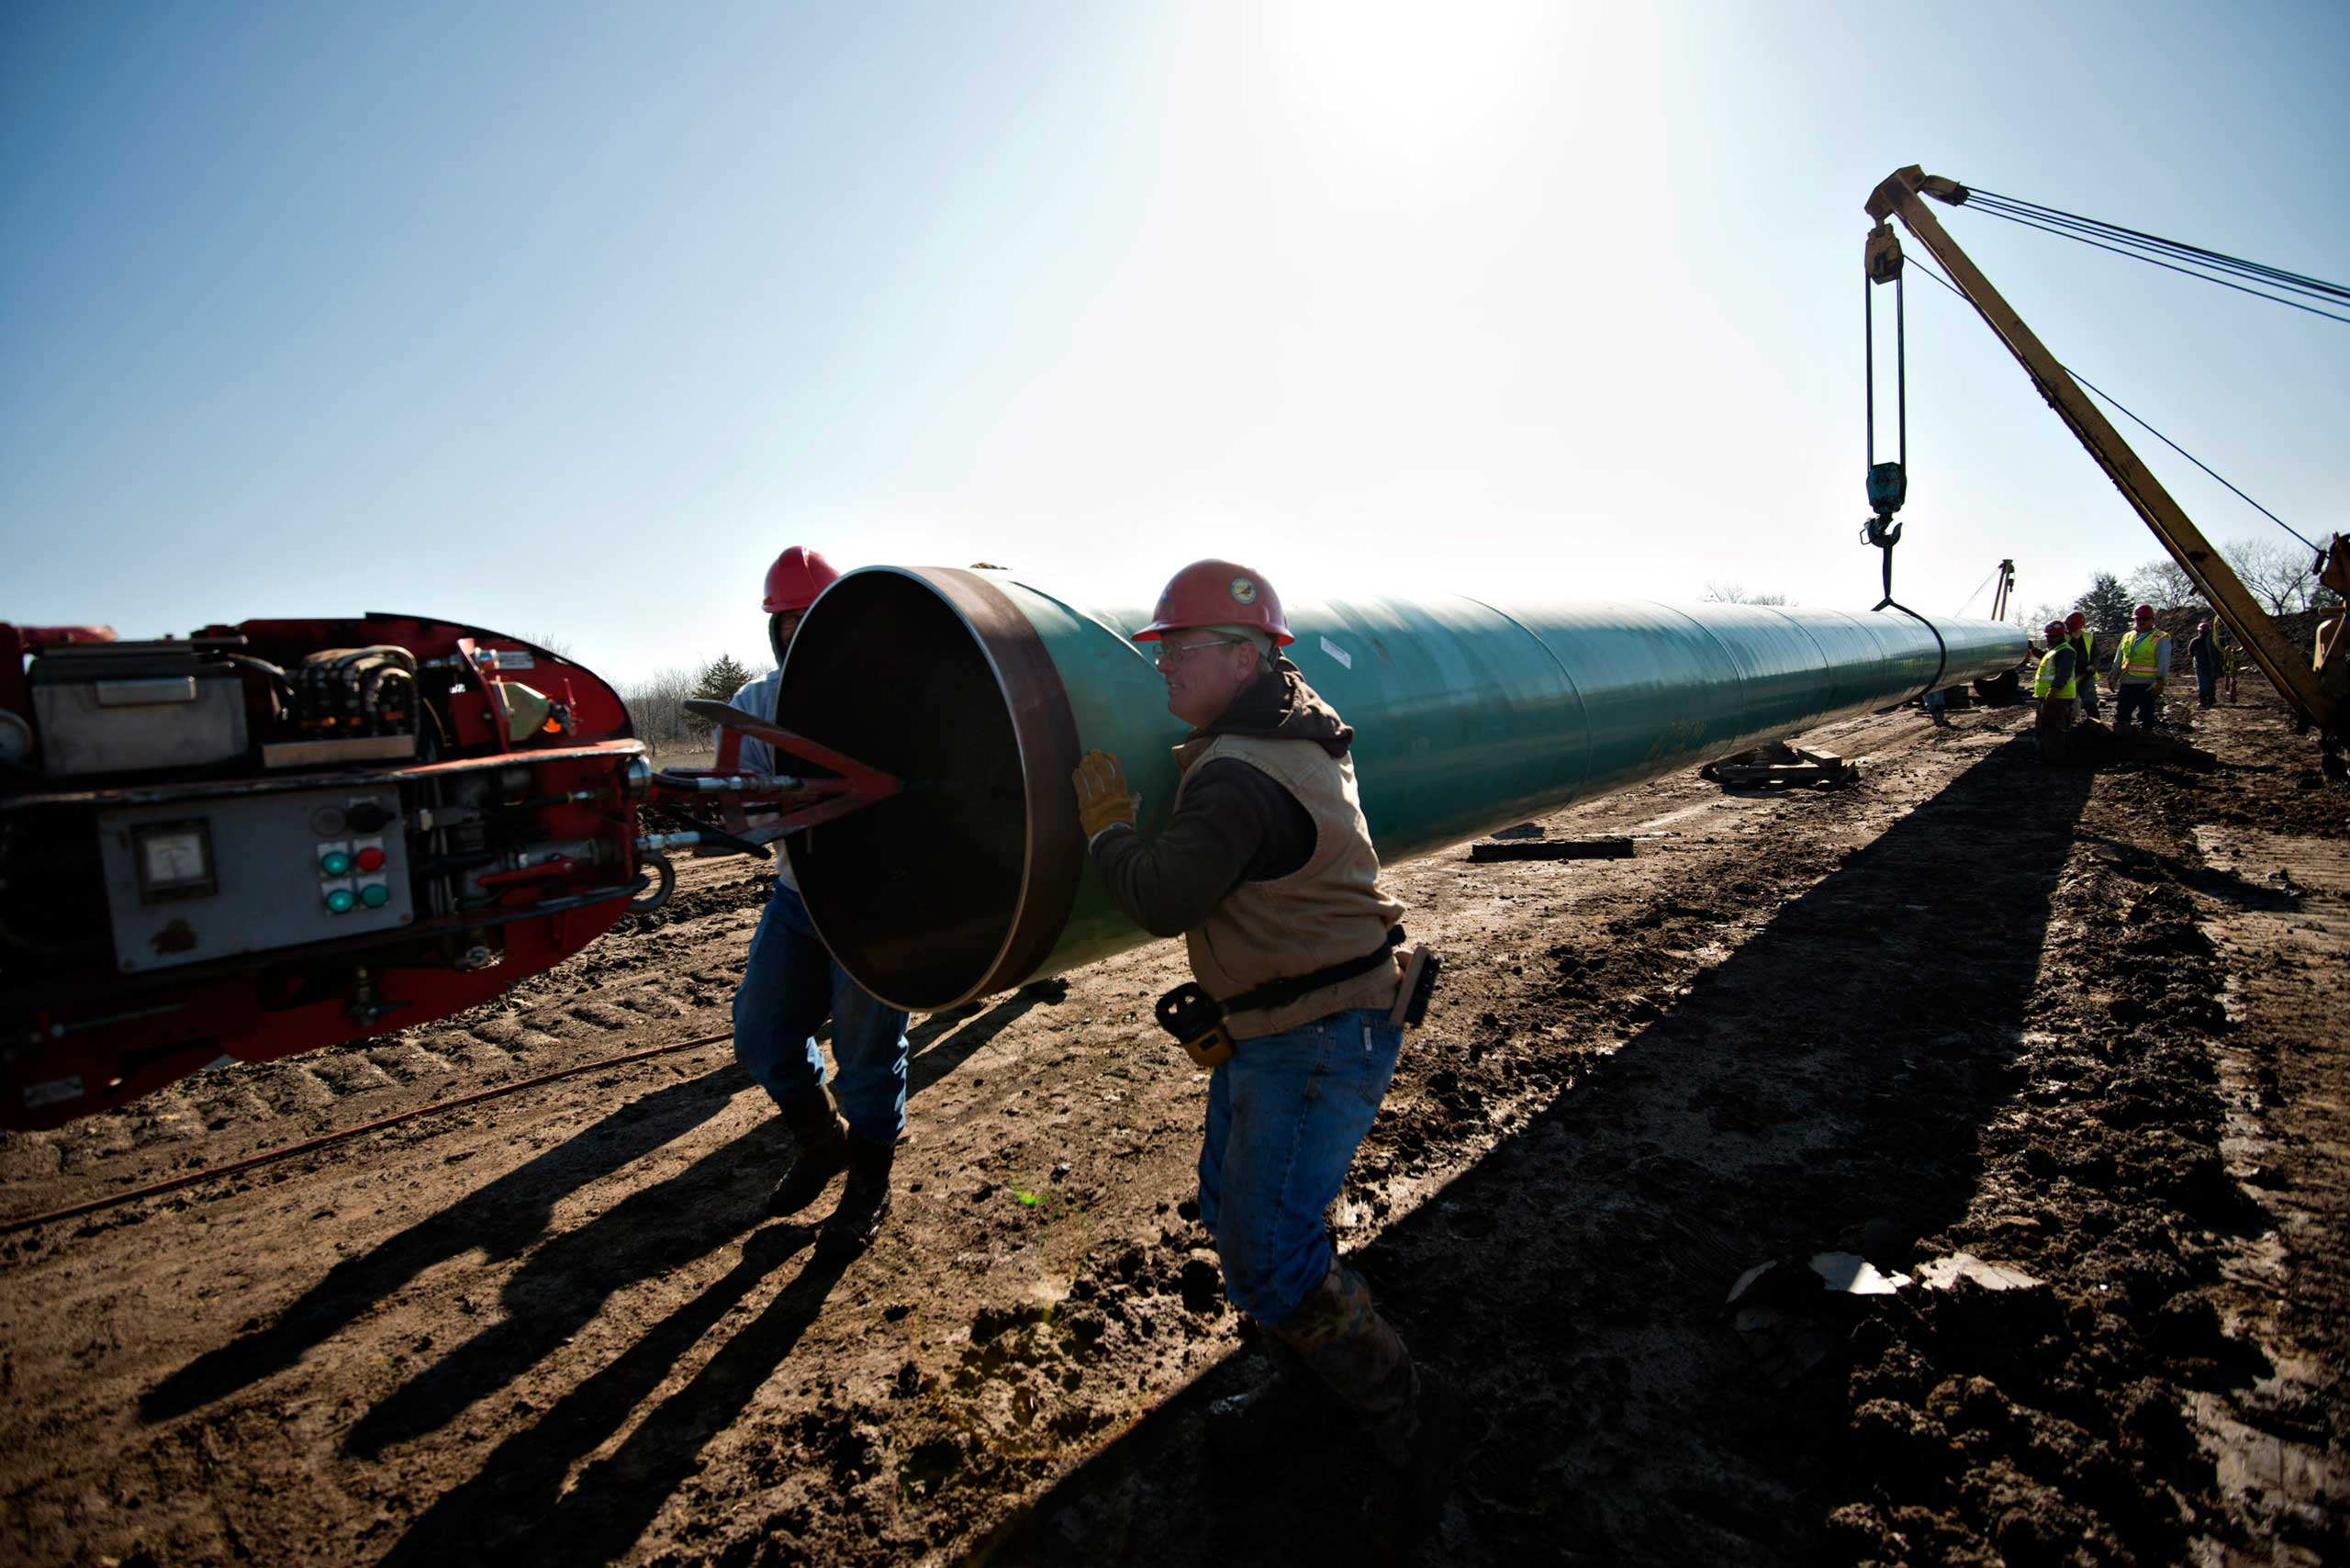 Workers move a section of pipe during construction of the Gulf Coast Project pipeline, part of the Keystone XL Pipeline Project, in Atoka, Okla. on March 11, 2013.